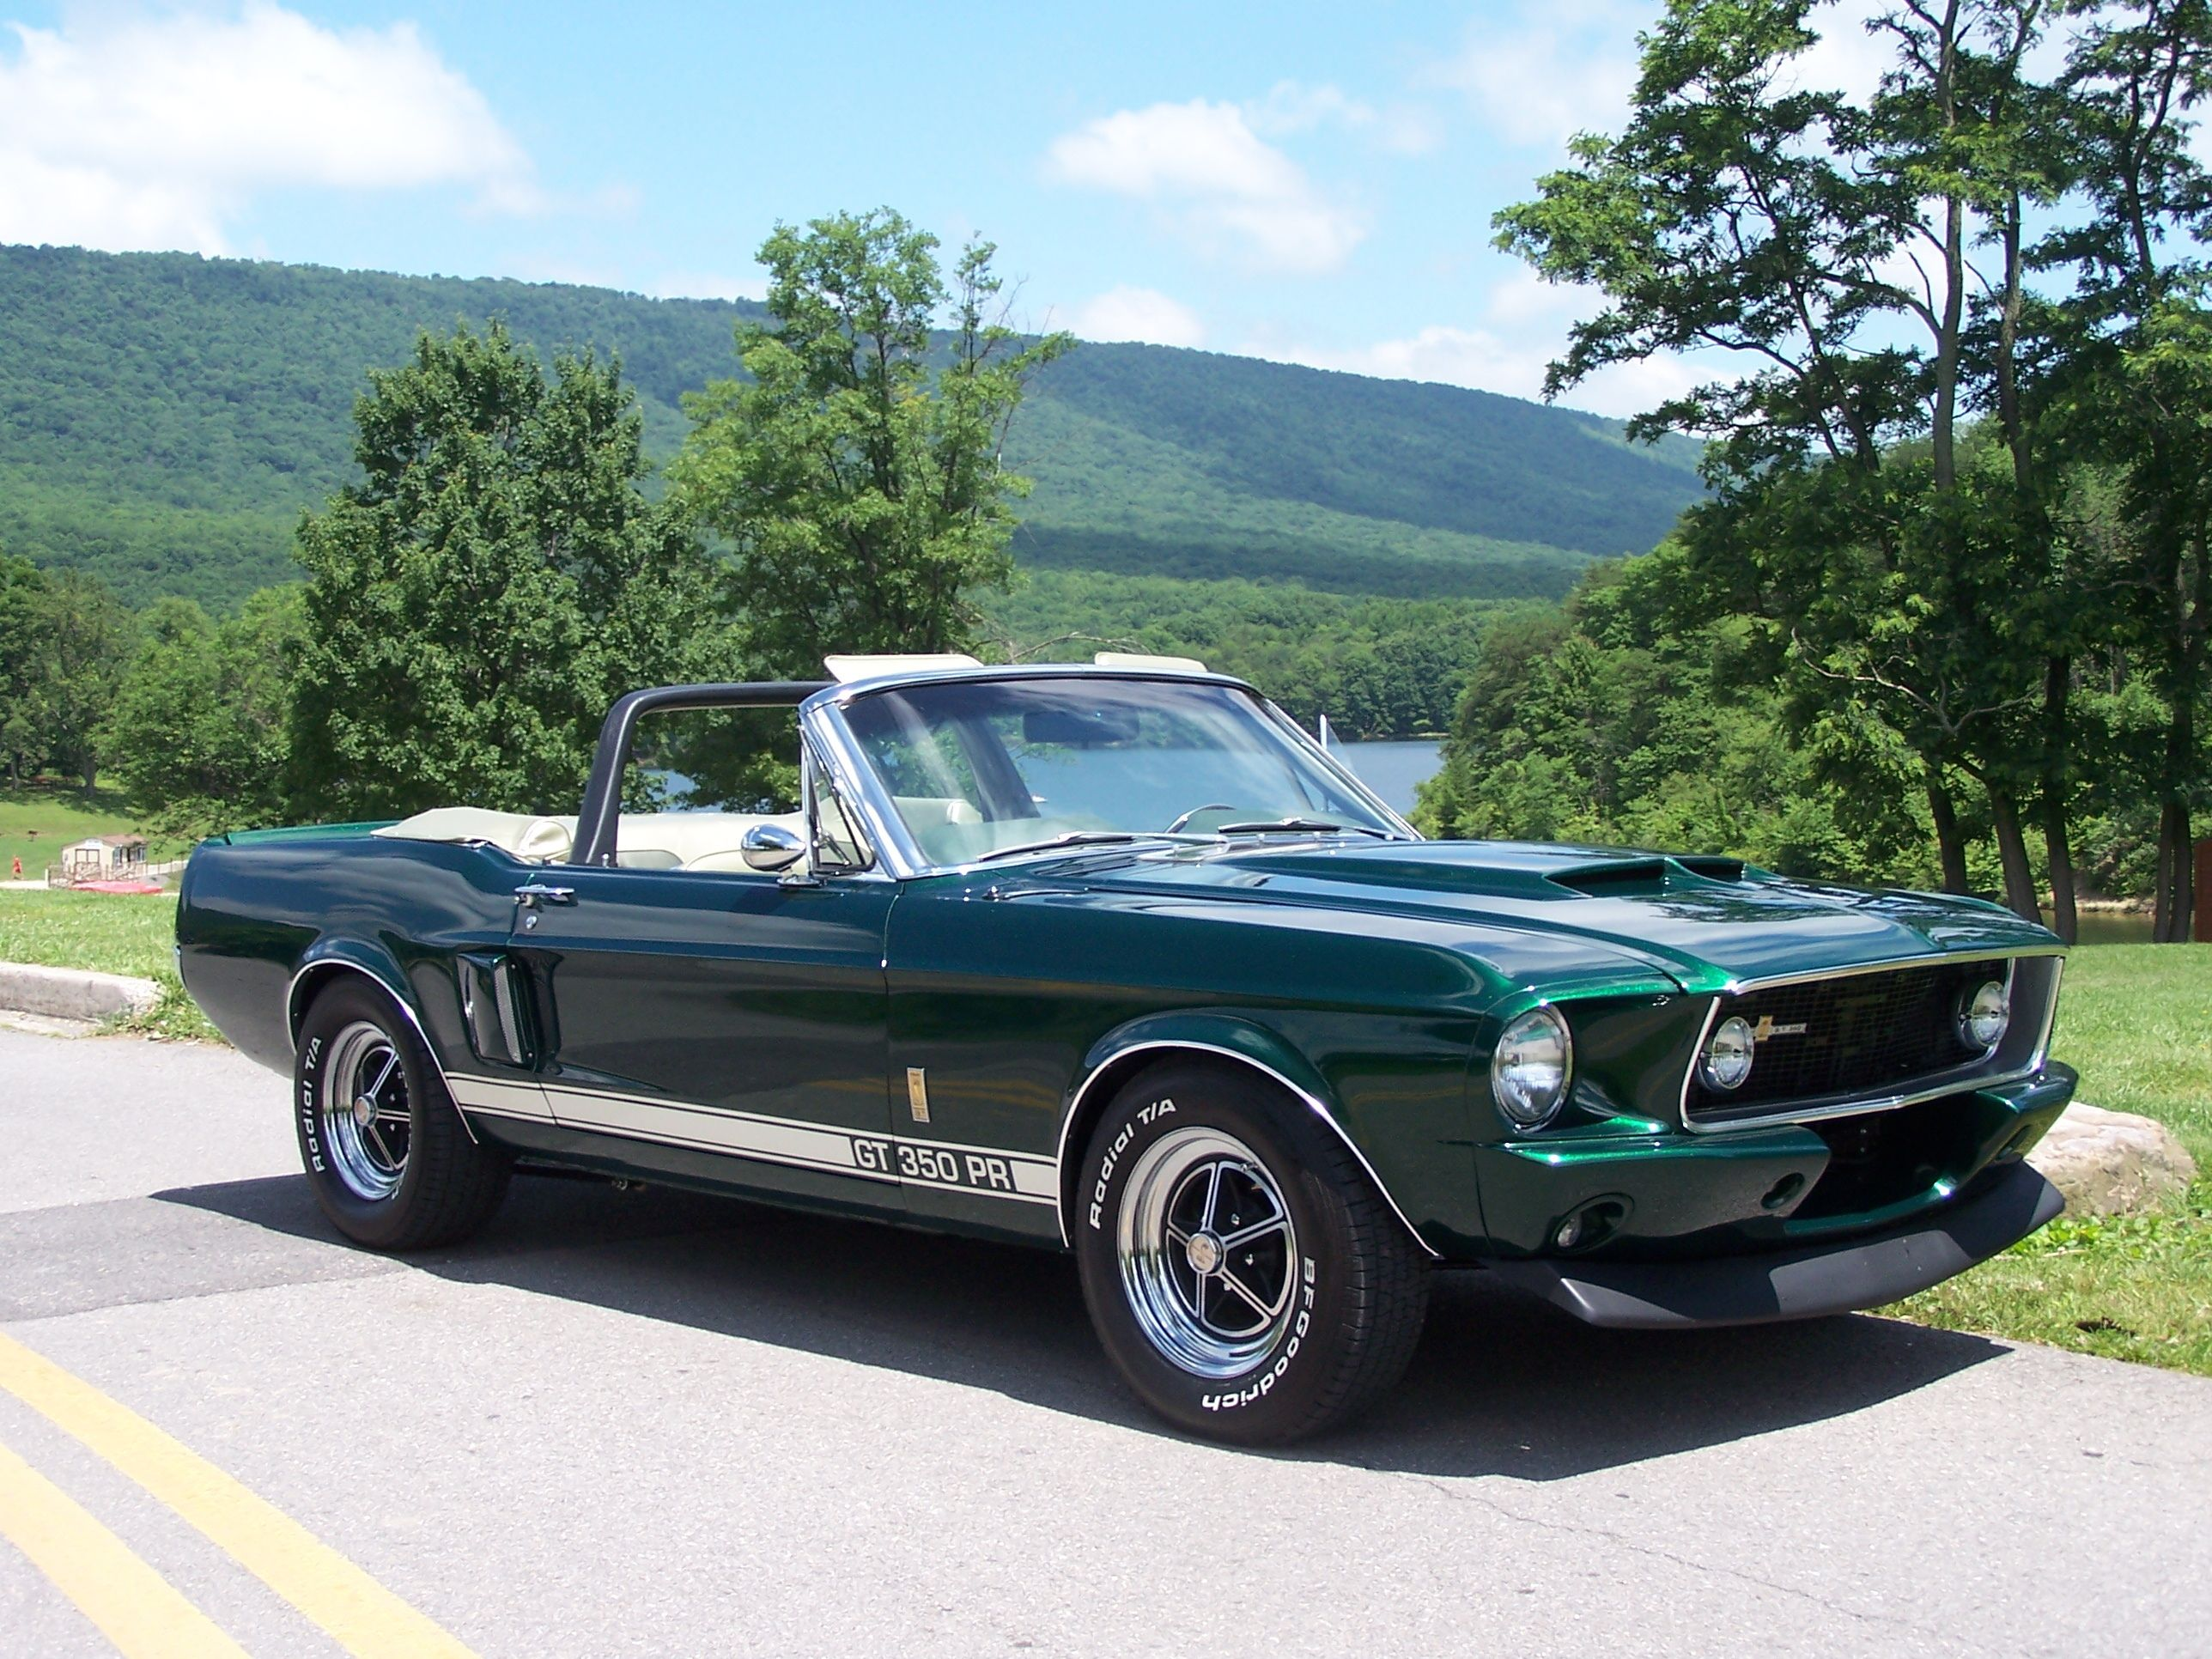 1967 Ford Mustang Shelby Gt350 Clone For Sale All Collector Cars